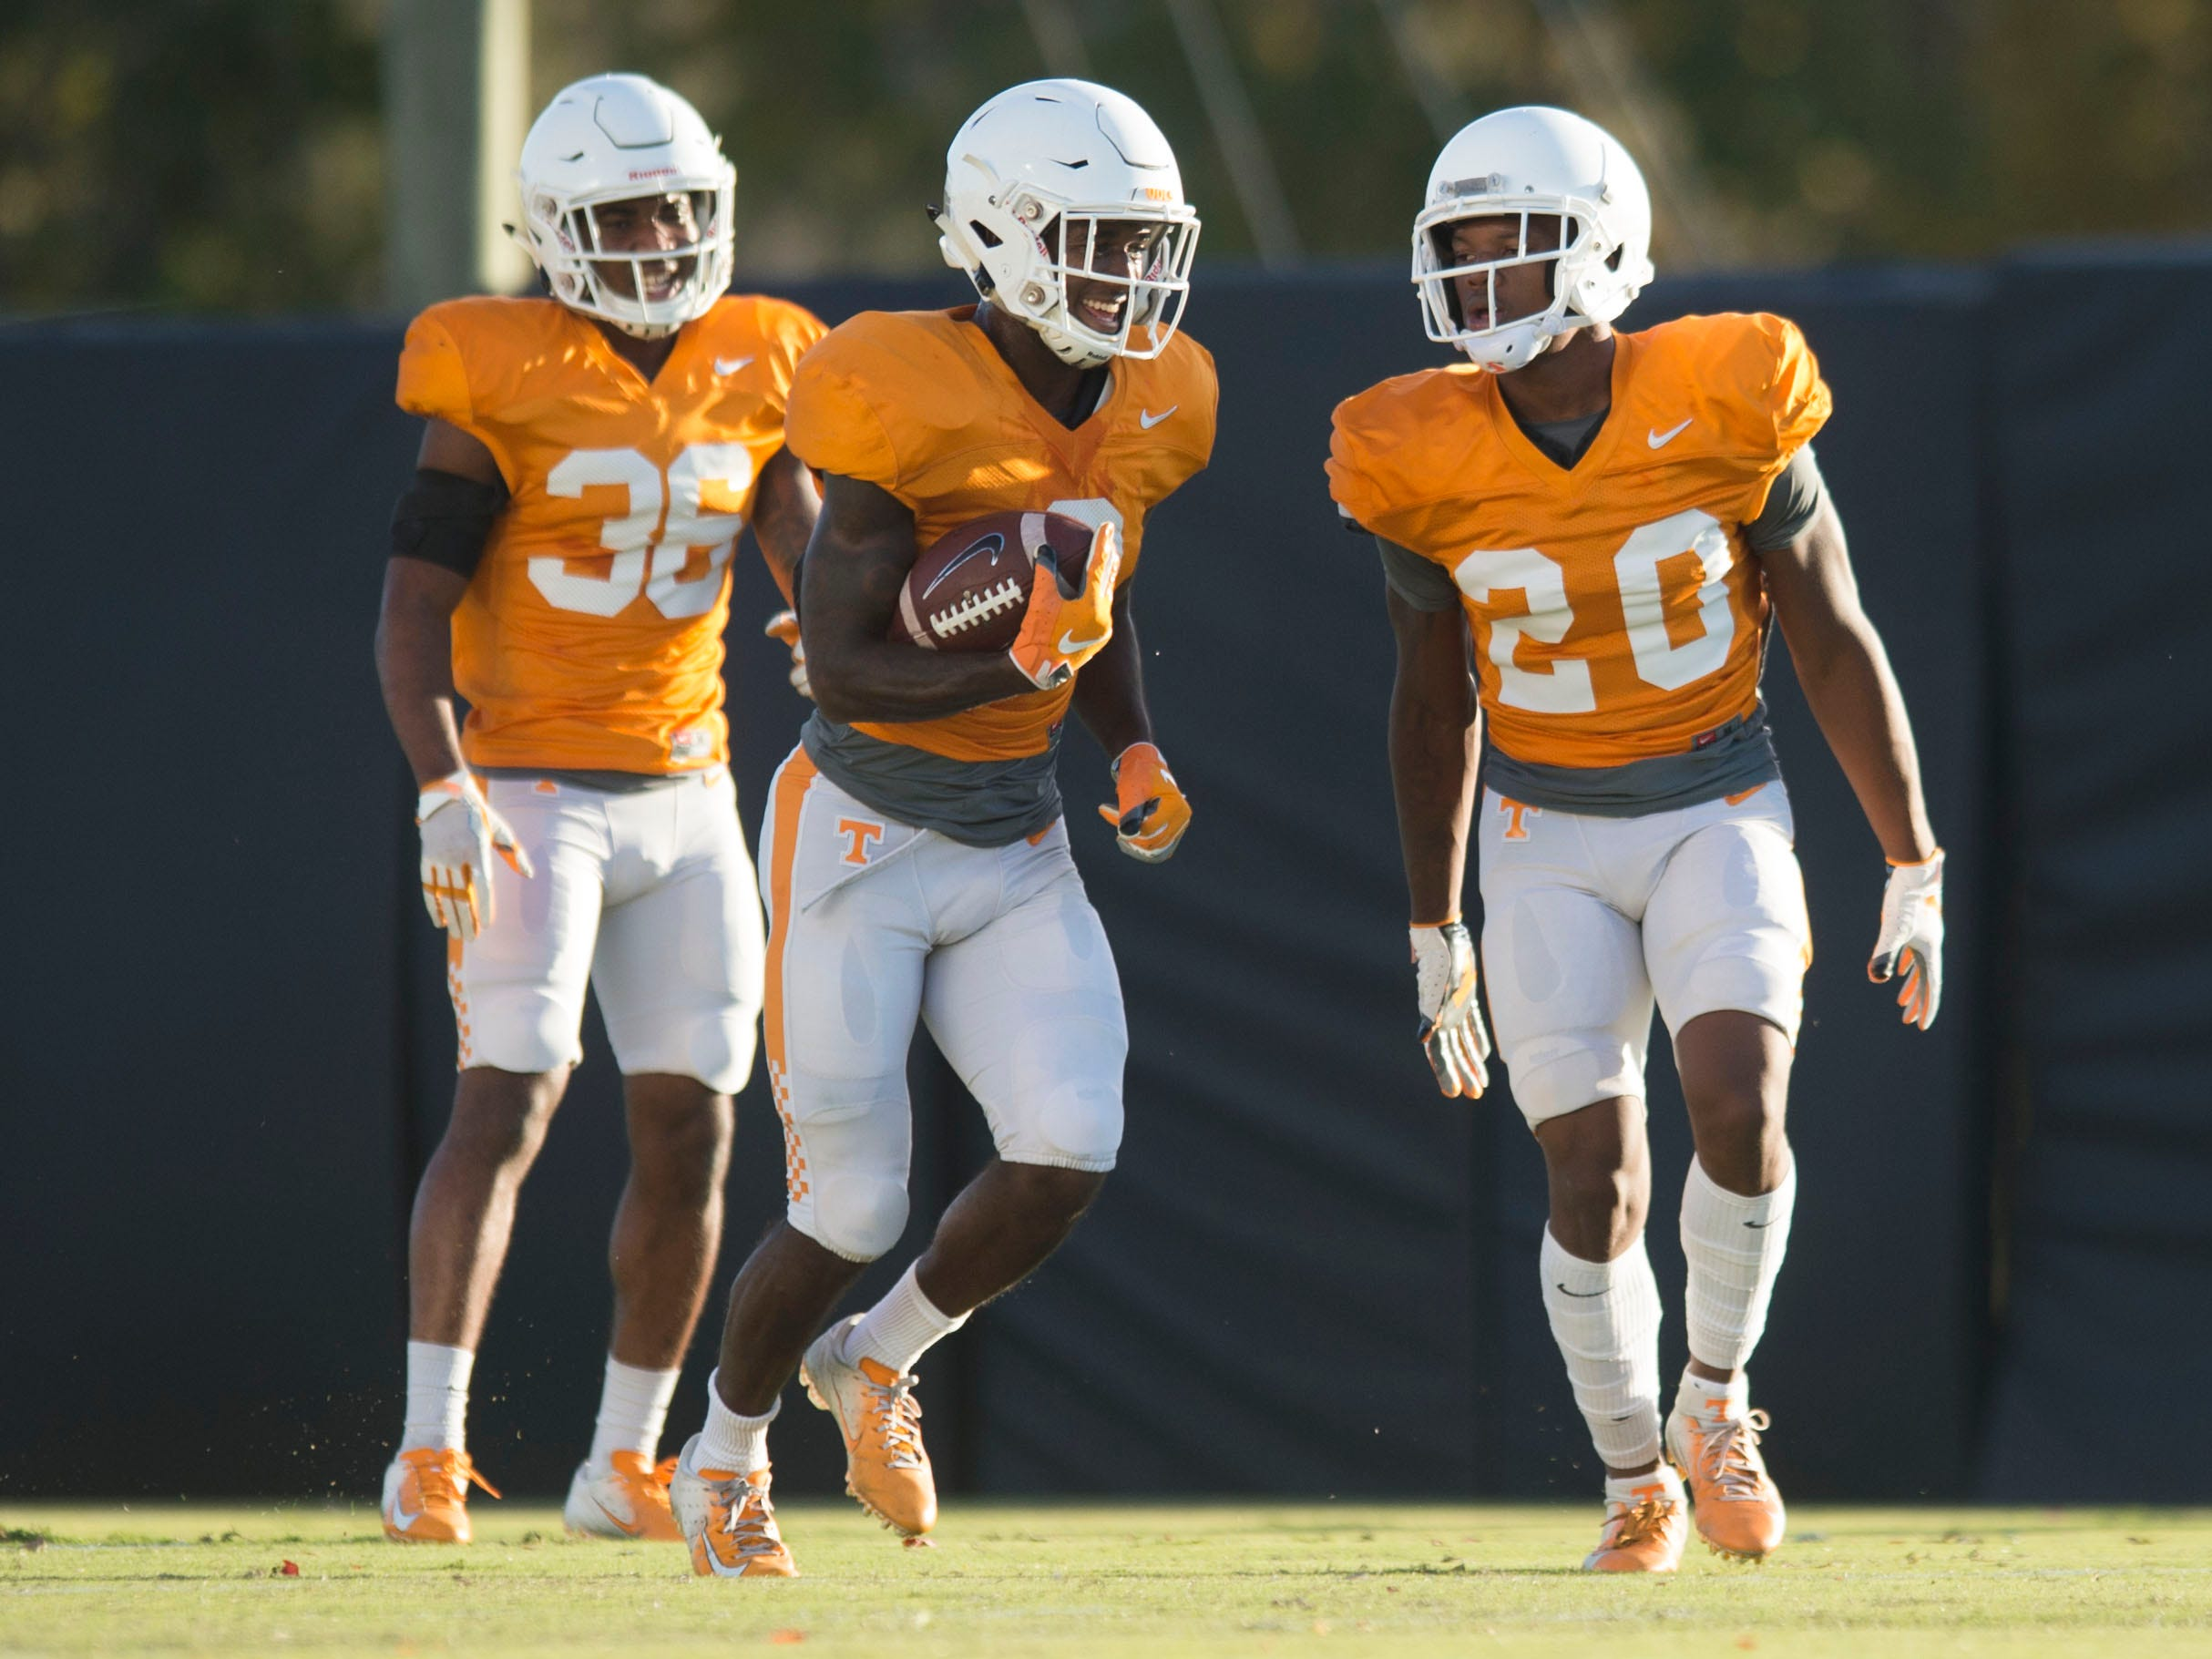 Tennessee defensive back's Terrell Bailey (36), Marquill Osborne (3), and Bryce Thompson (20) at football practice on Tuesday, November 6, 2018.